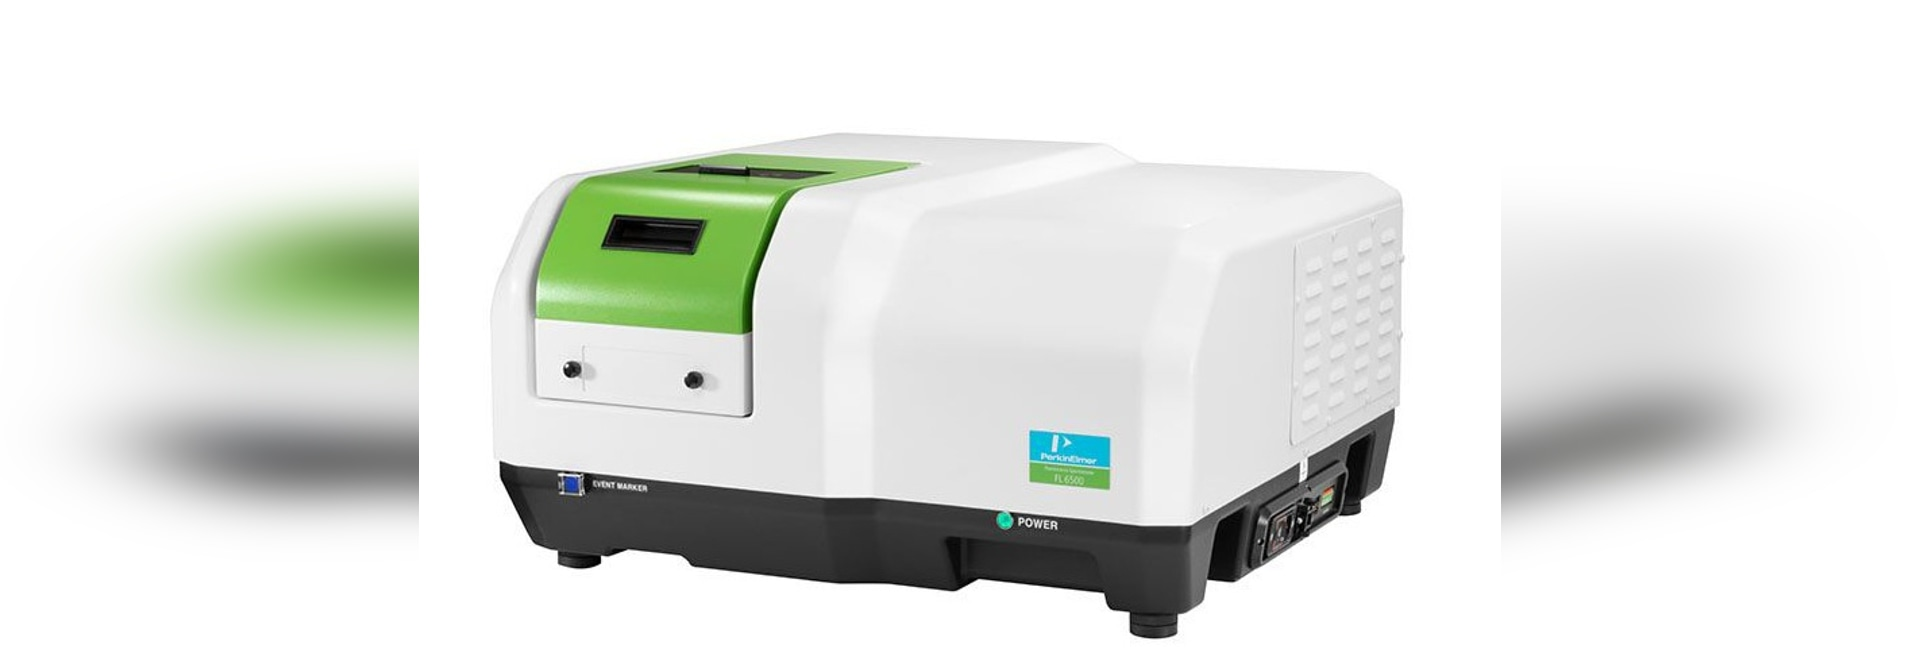 New Continuous Wave Fluorescence Spectrometers